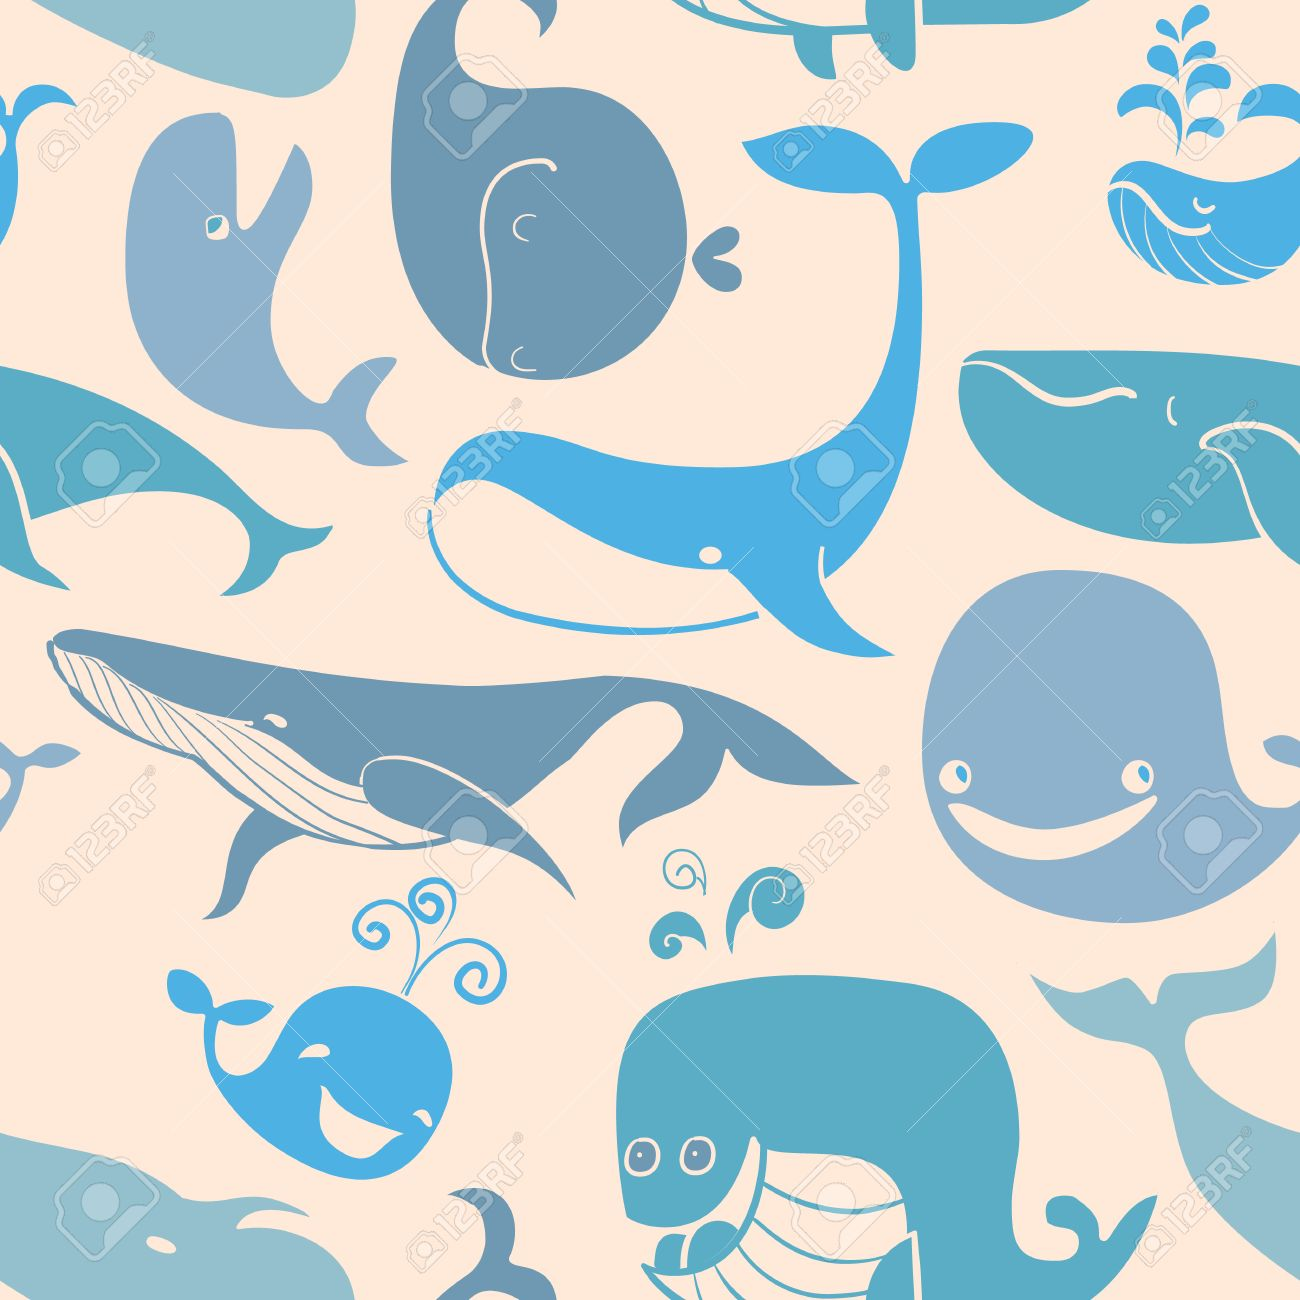 Cute Doodle Blue Whales Marine Seamless Background Seamless 1300x1300